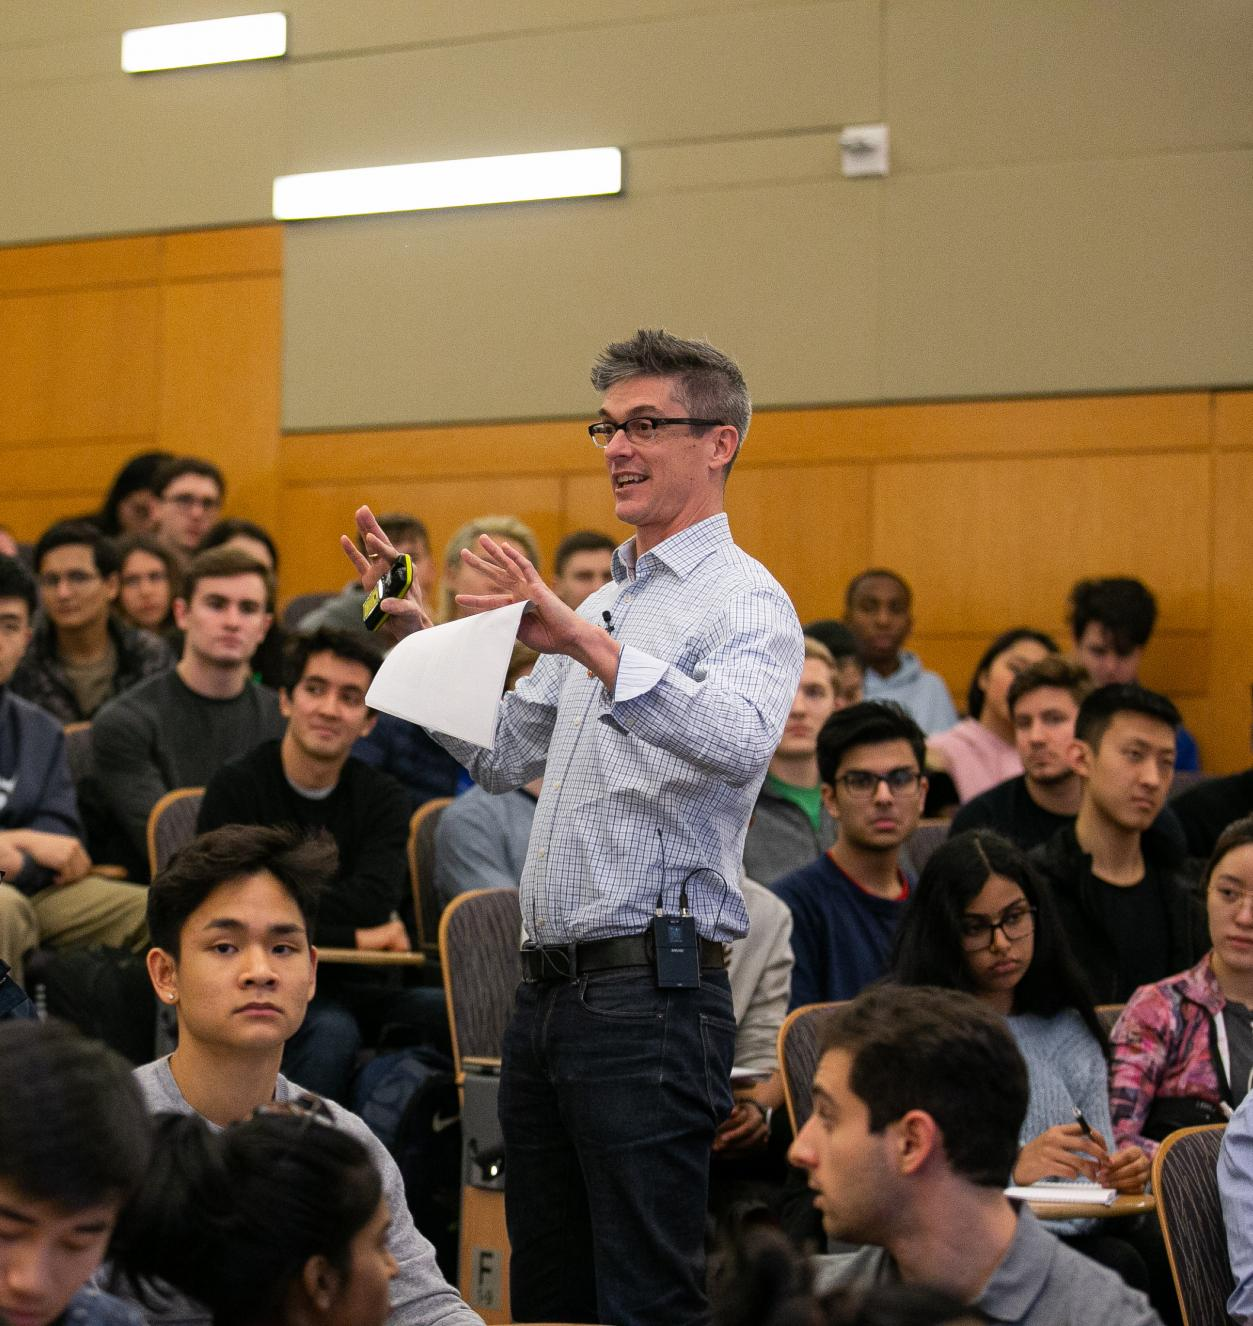 Professor speaking while standing in a crowd of seated students